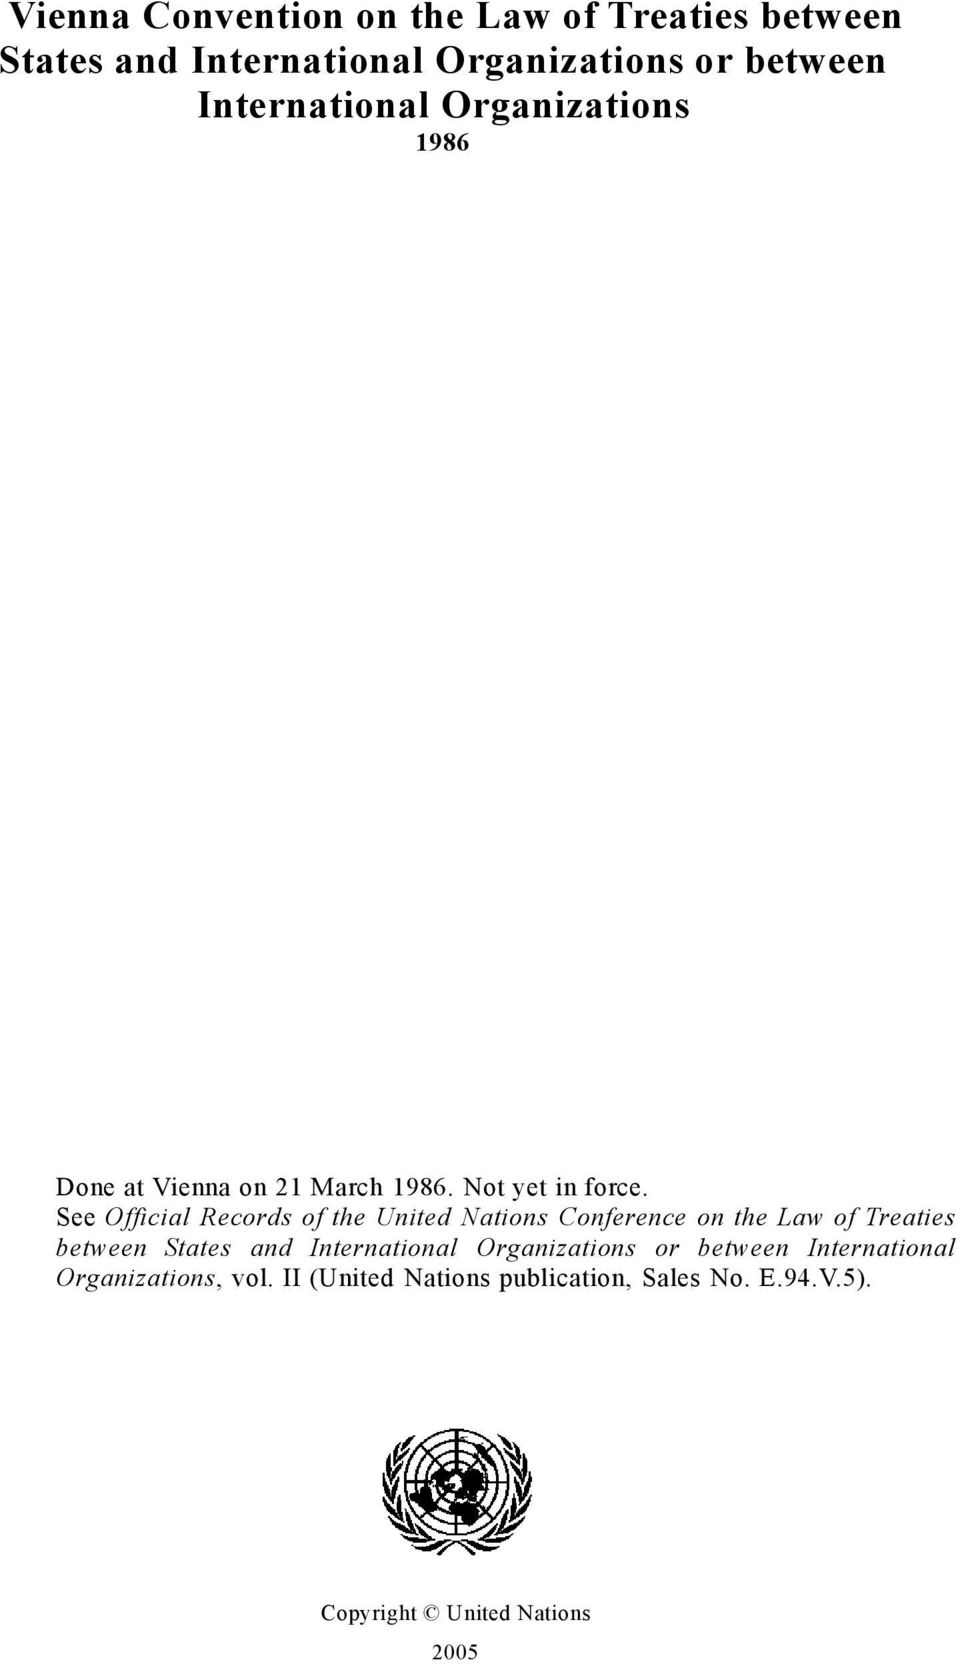 See Official Records of the United Nations Conference on the Law of Treaties between States and